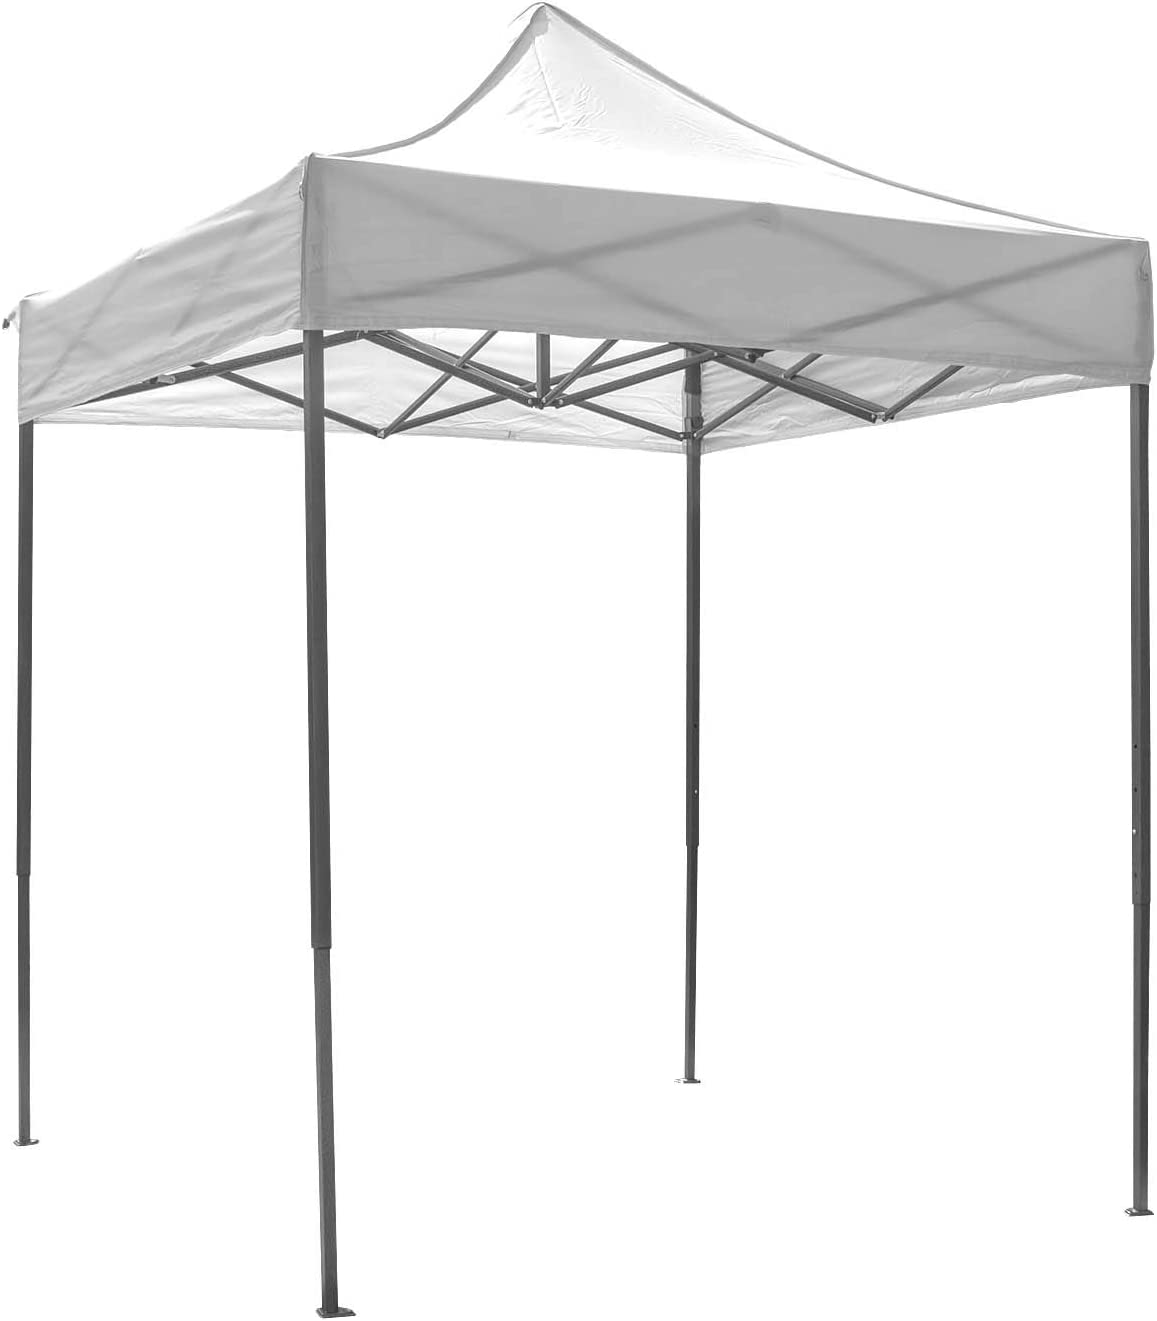 AirWave SJ062301E - Gazebo: Amazon.es: Jardín